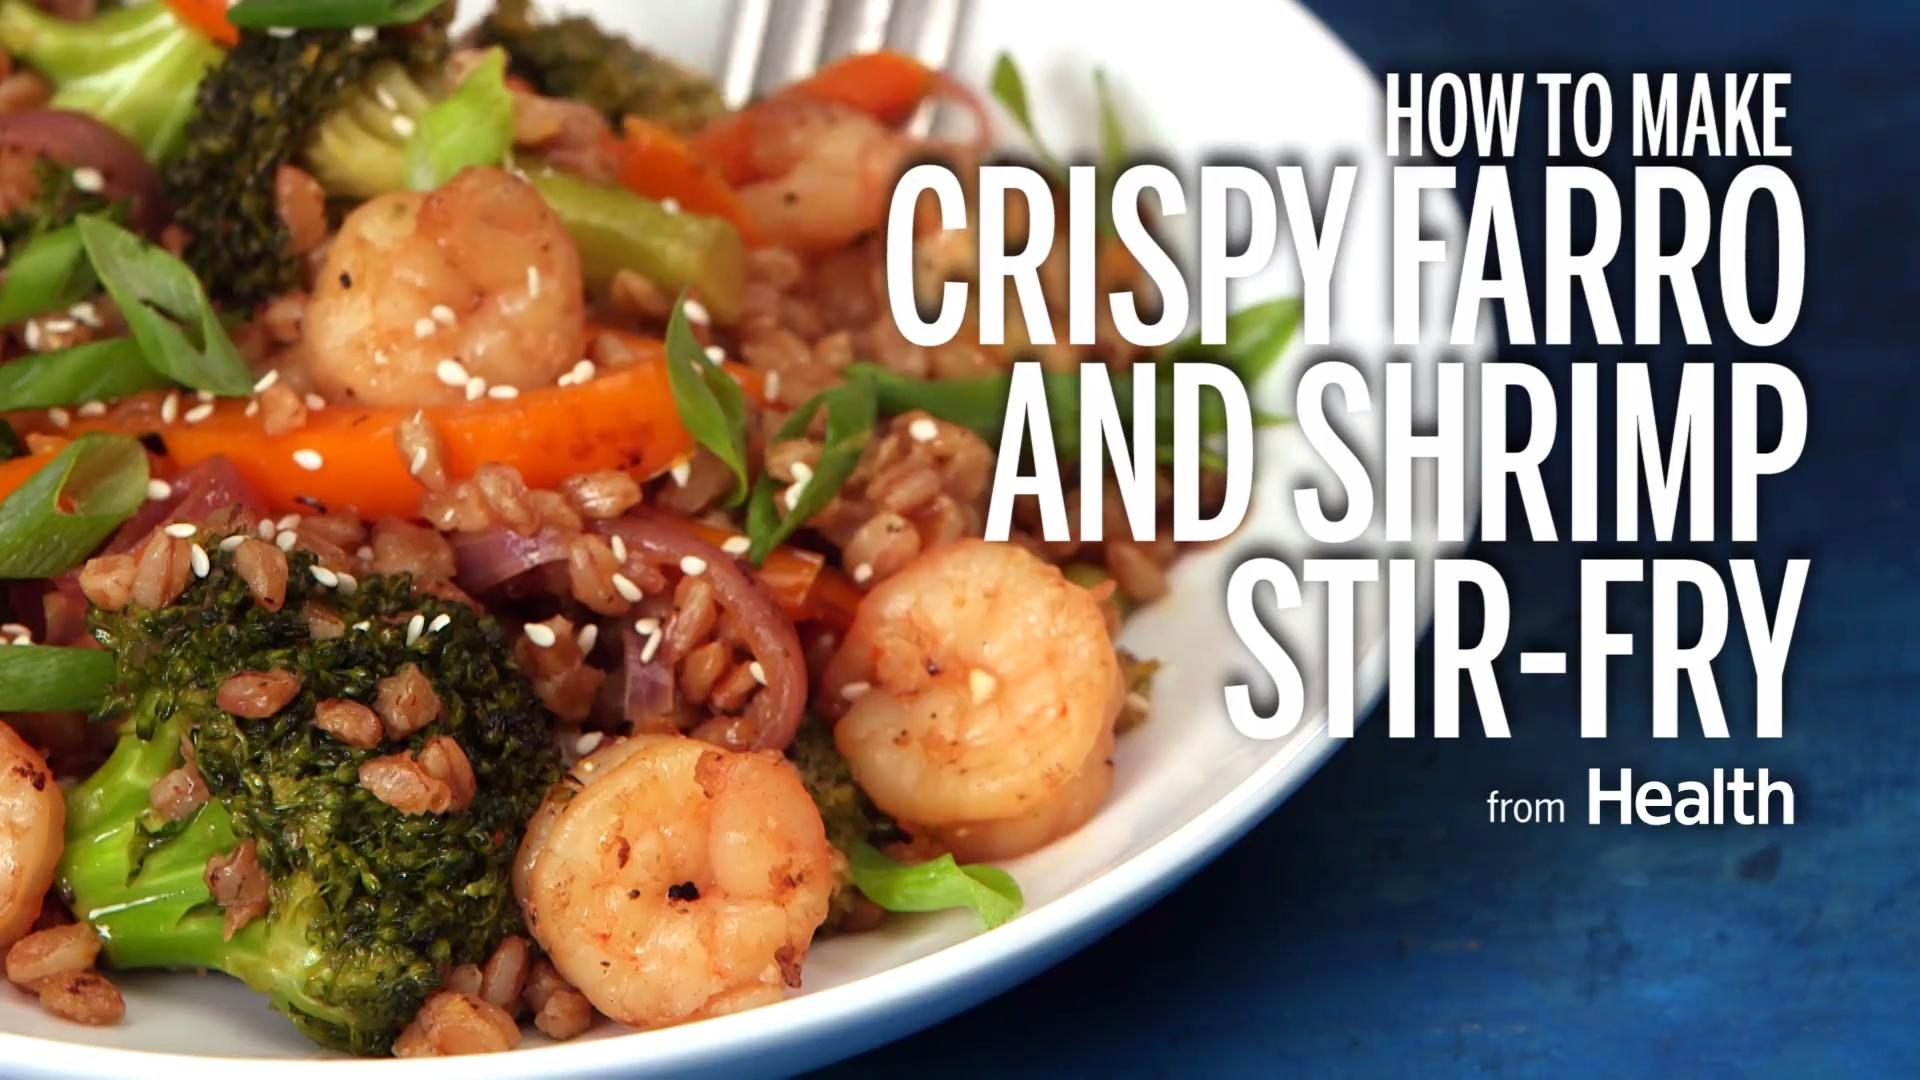 Crispy farro and shrimp stir-fry